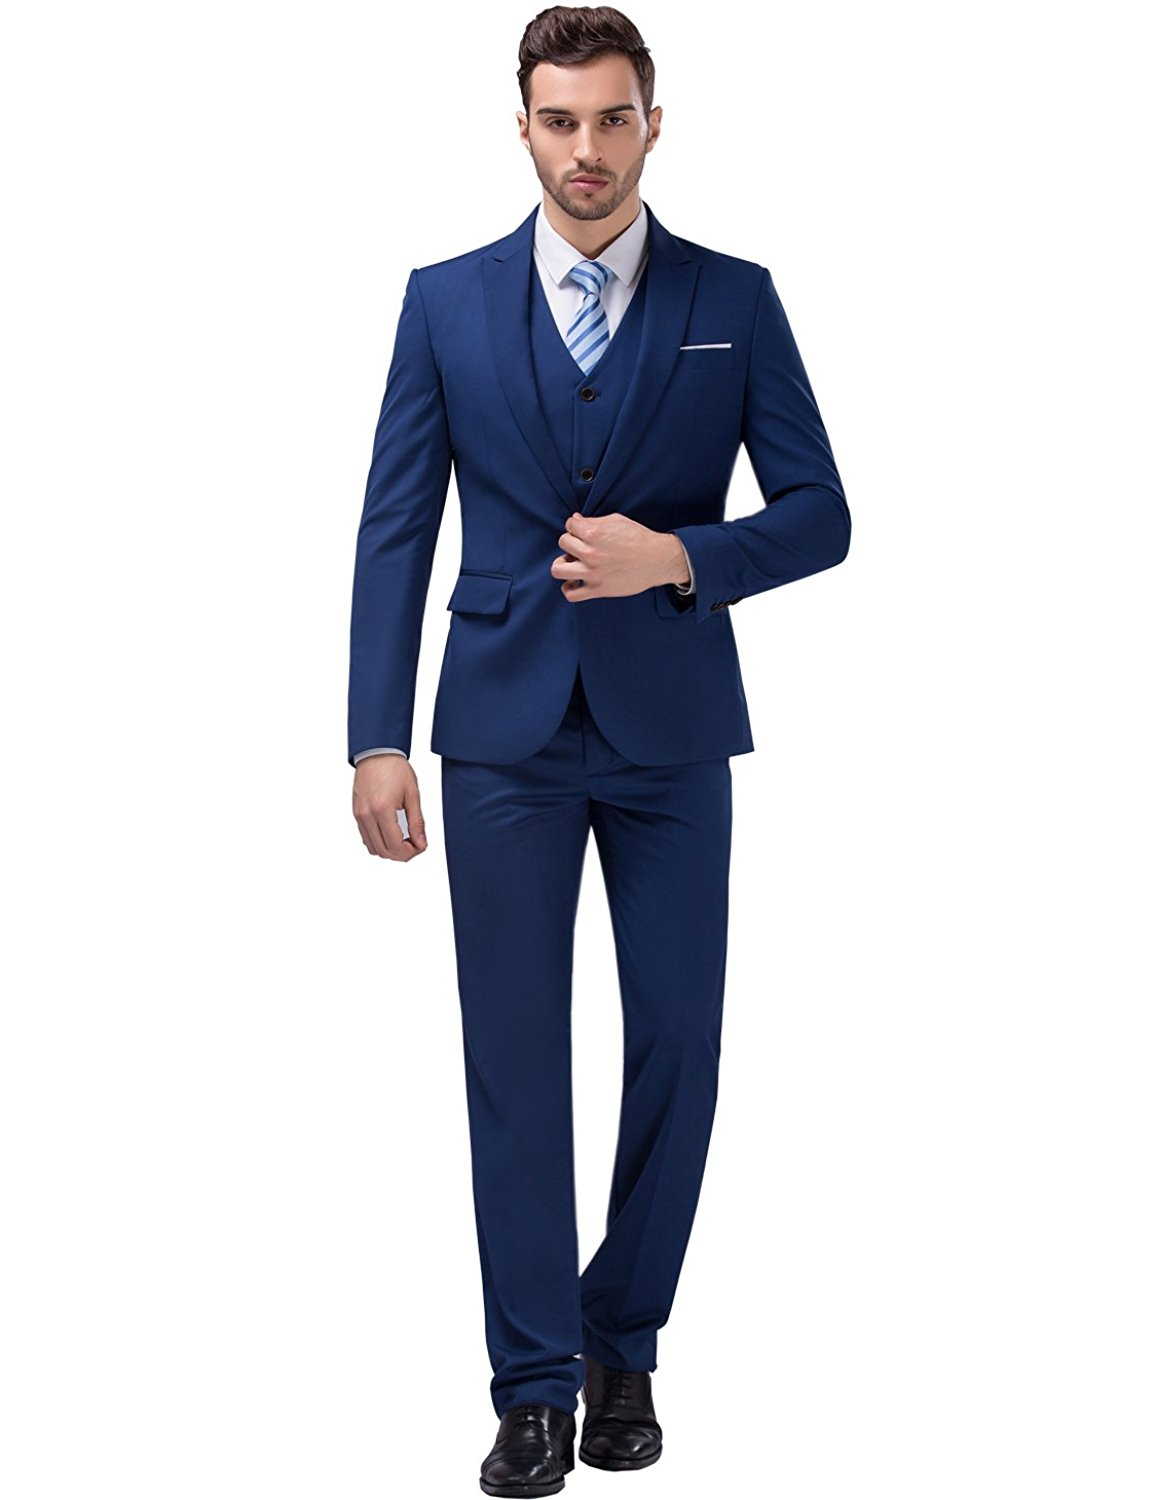 wedding tuxedos, wedding suits, mens tuxedos, mens formal wear, formal wear  for BPYEWGC